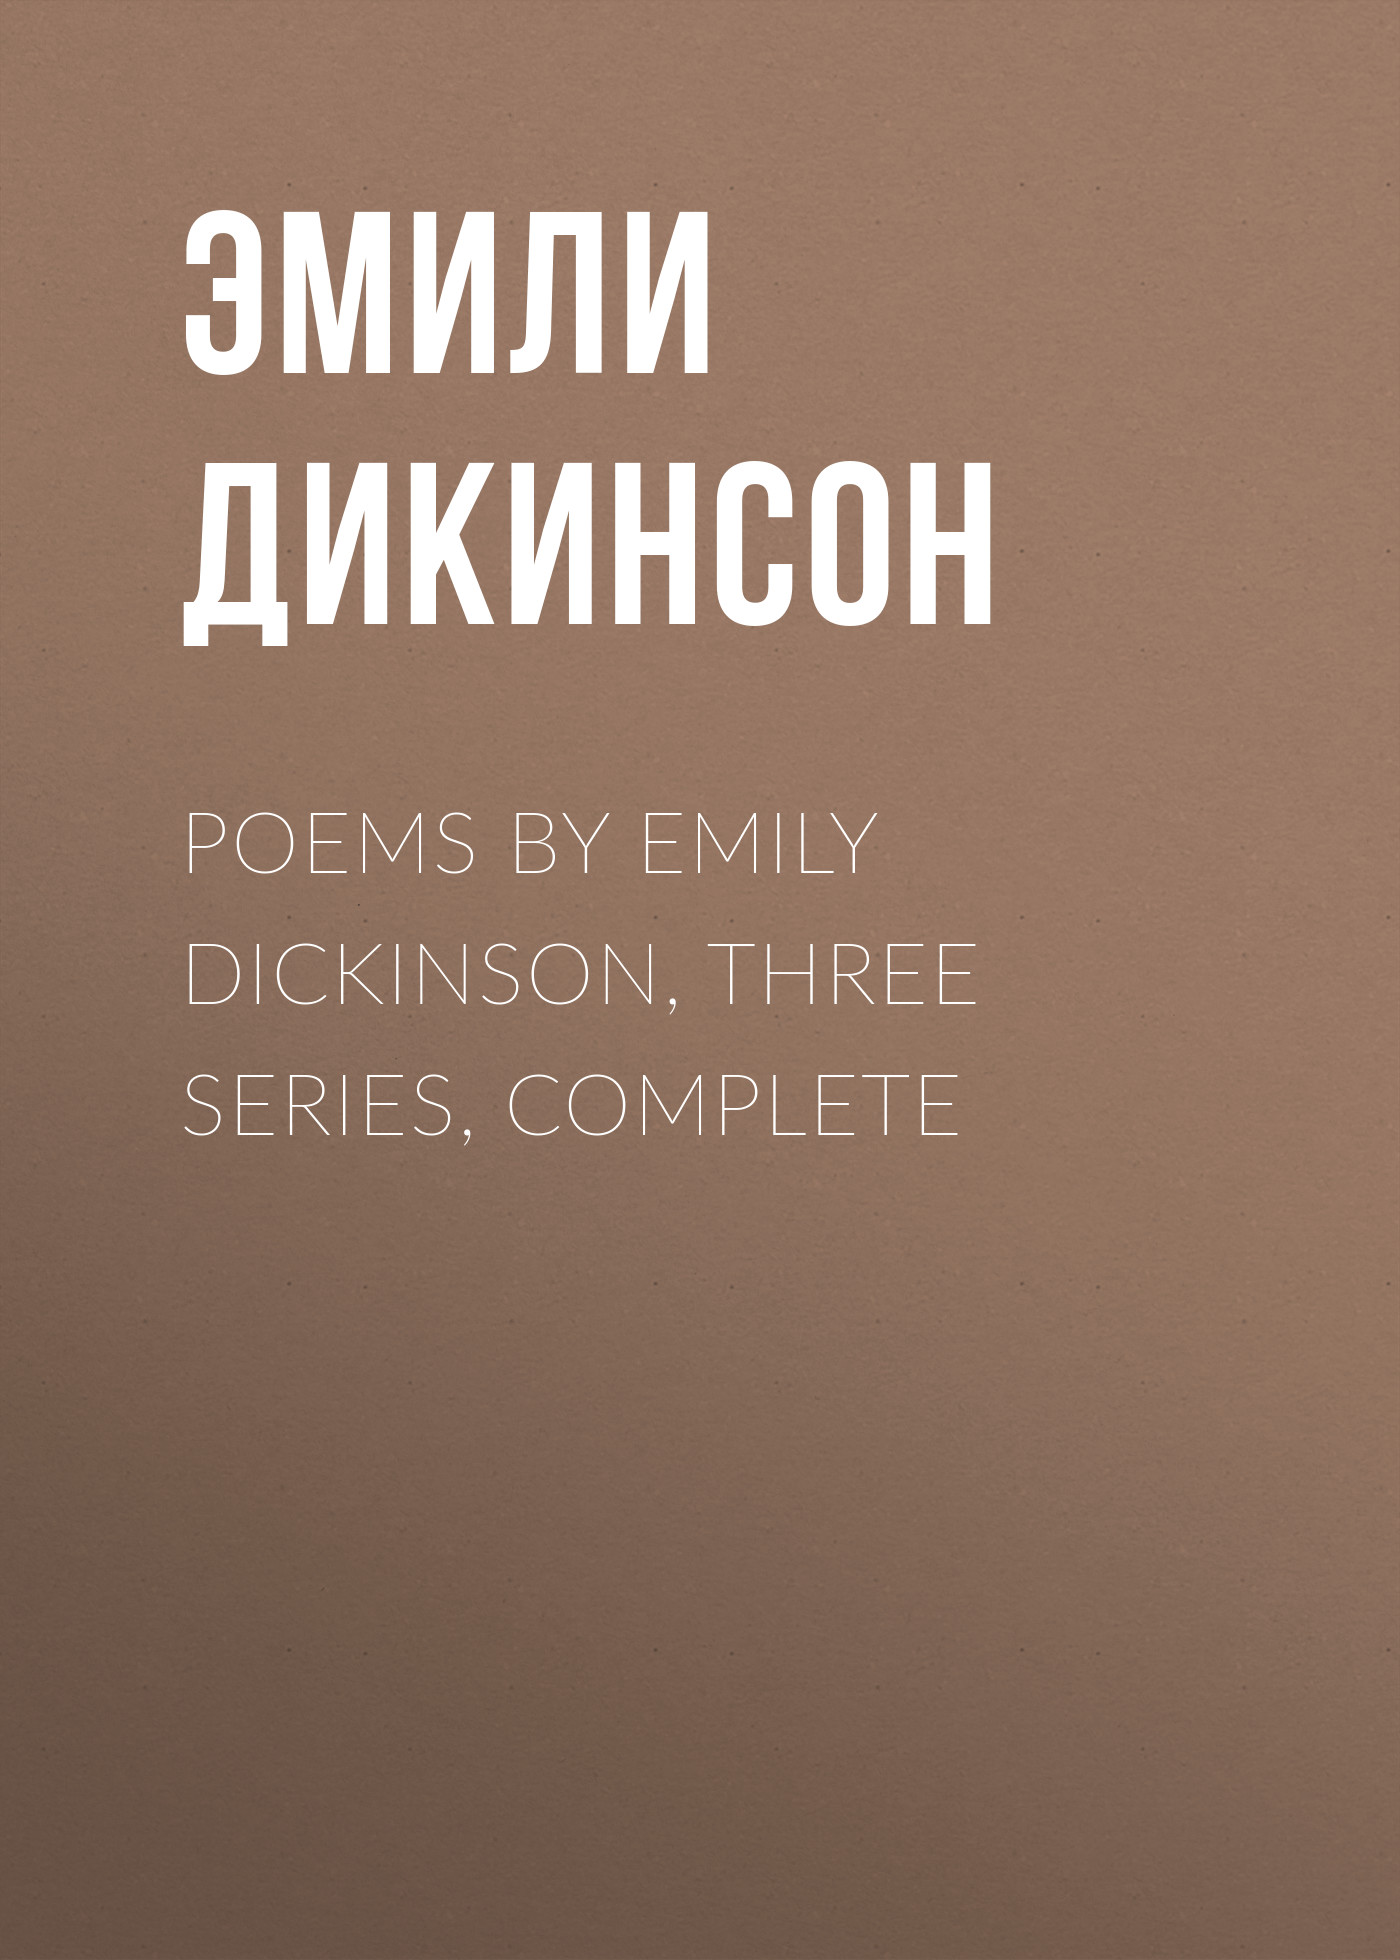 Эмили Дикинсон Poems by Emily Dickinson, Three Series, Complete complete poems of hart crane